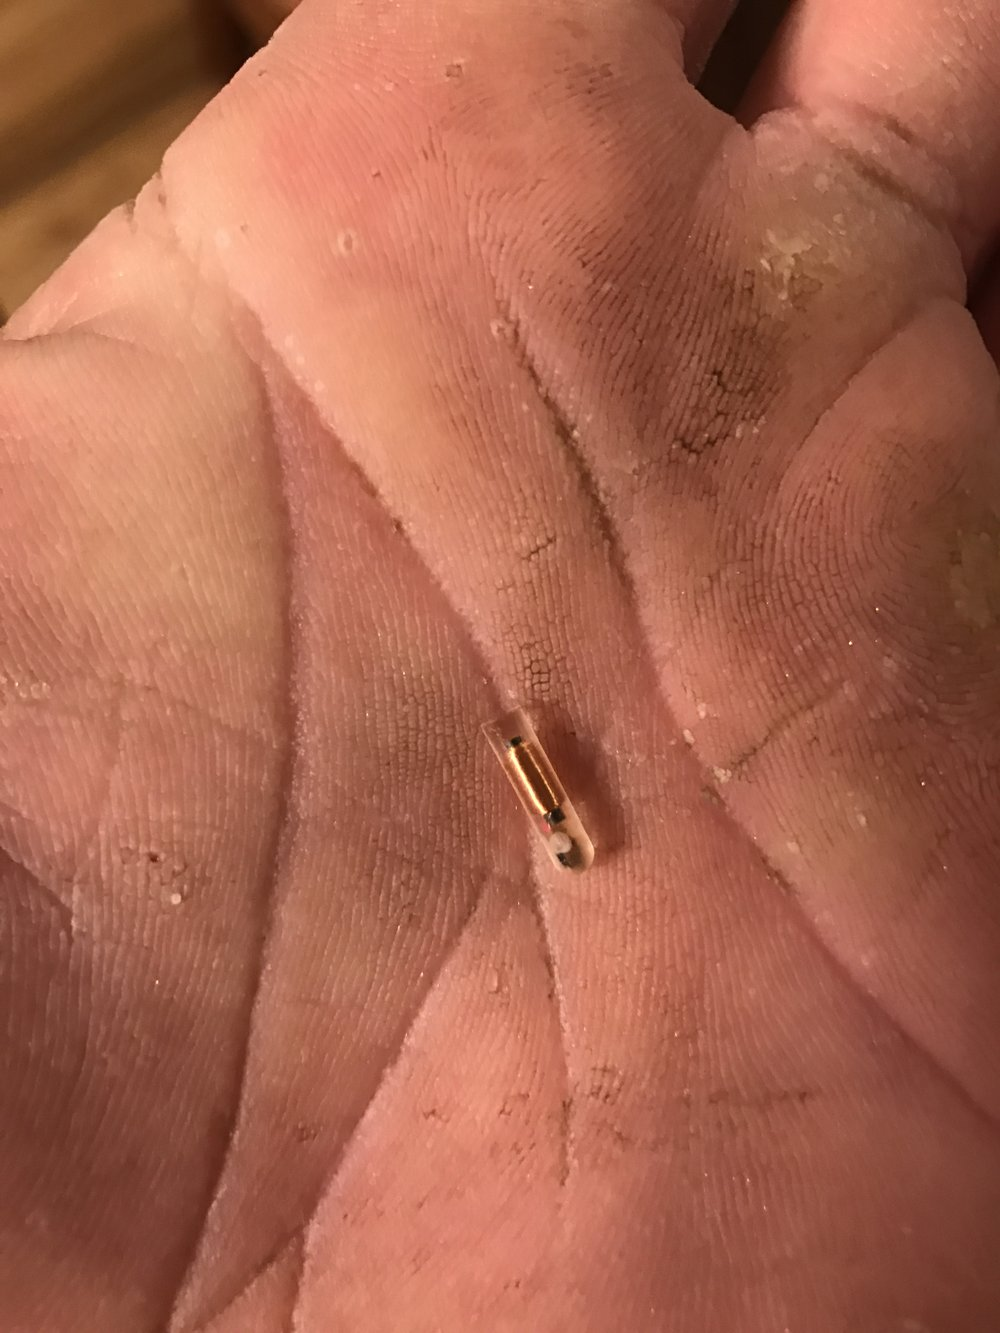 This image is of a micro chip that was inserted as protocol by Coleman National Fish Hatchery and recovered by local fishing guide Mike Rasmussen while processing a hatchery steelhead caught by Kevin Barnes (pictured above with the Sacramento River Steelhead). Biologist with the DFG collected the valuable information from this chip for their research in the life cycle of Sacramento River Steelhead. Doing their part to better understand and manage the steelhead fishery here on the Sacramento River.